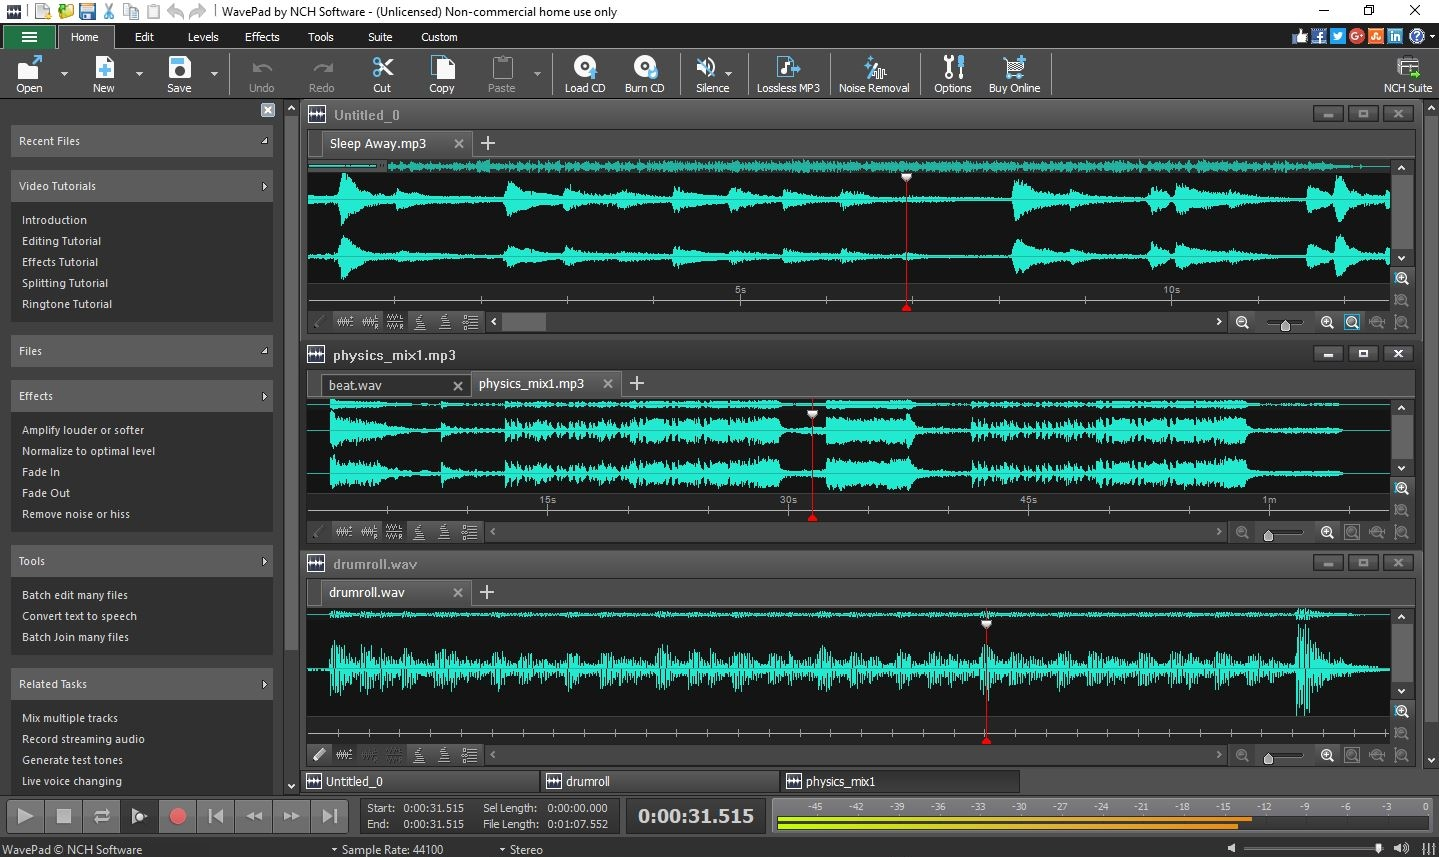 Best Voice Recording Software 2019 - Voice Recorders for PC, Mac